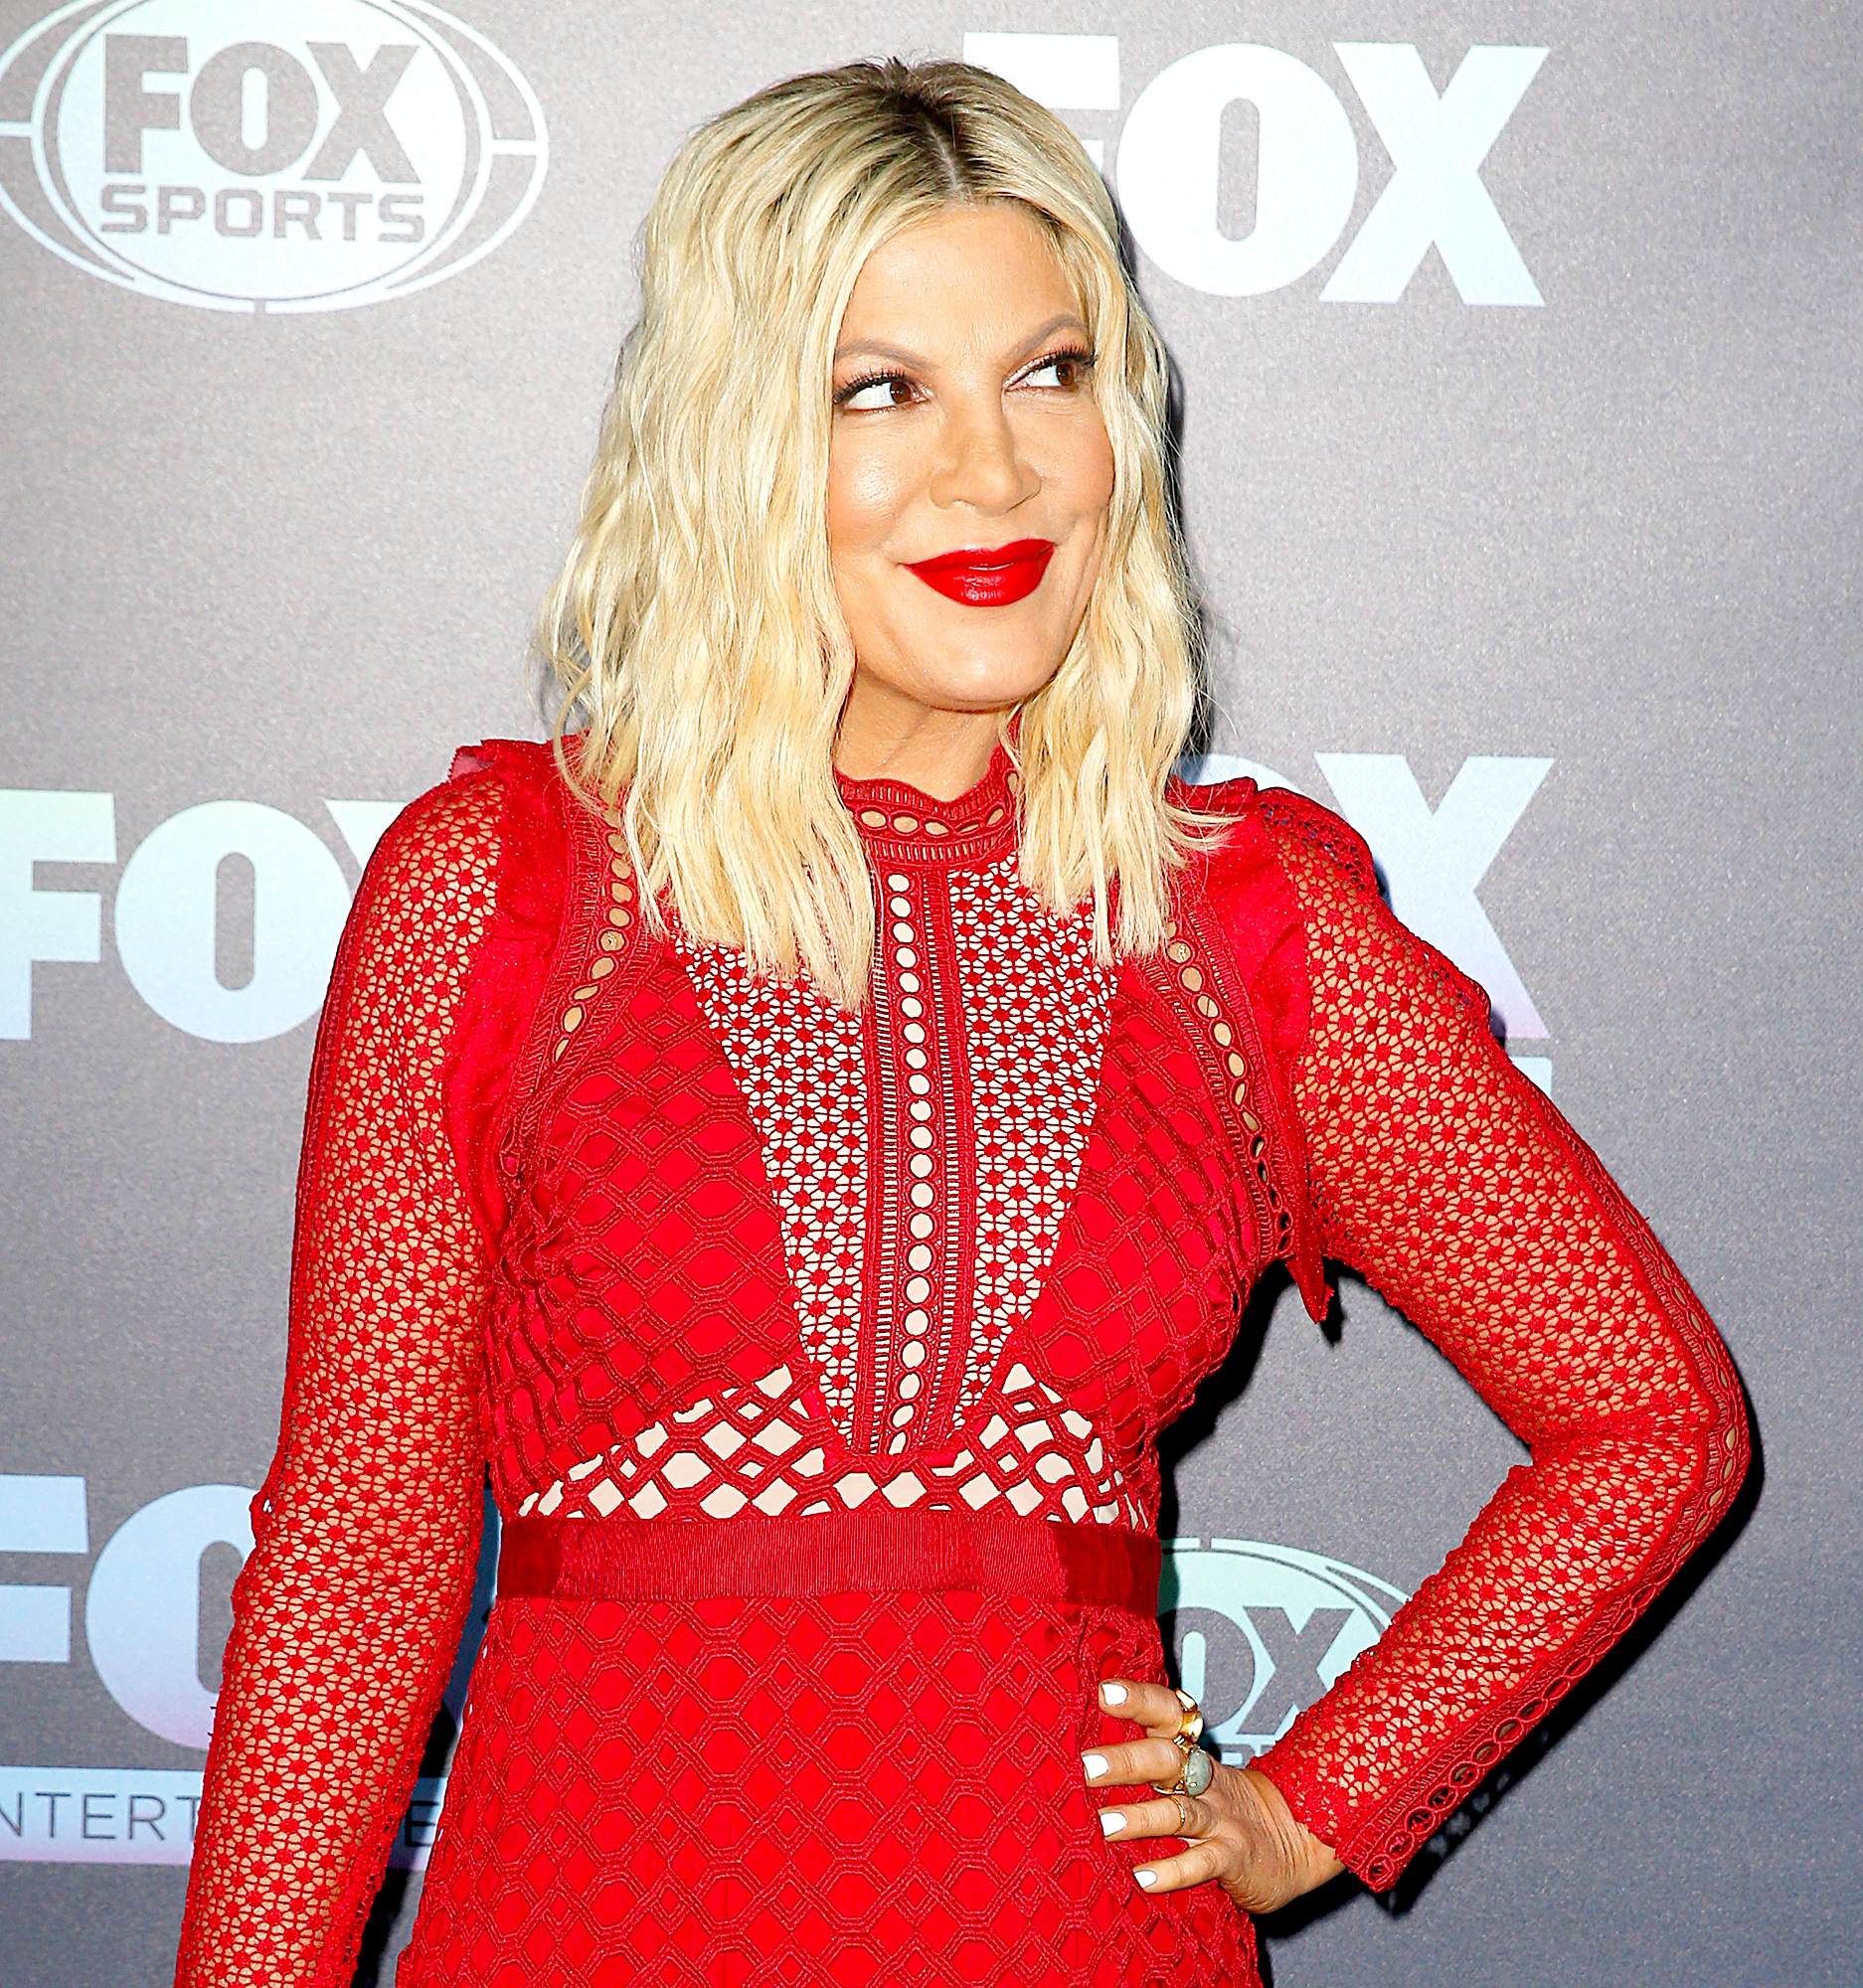 Tori-Spelling-Reveals-Who-Will-Play-Her-Husband